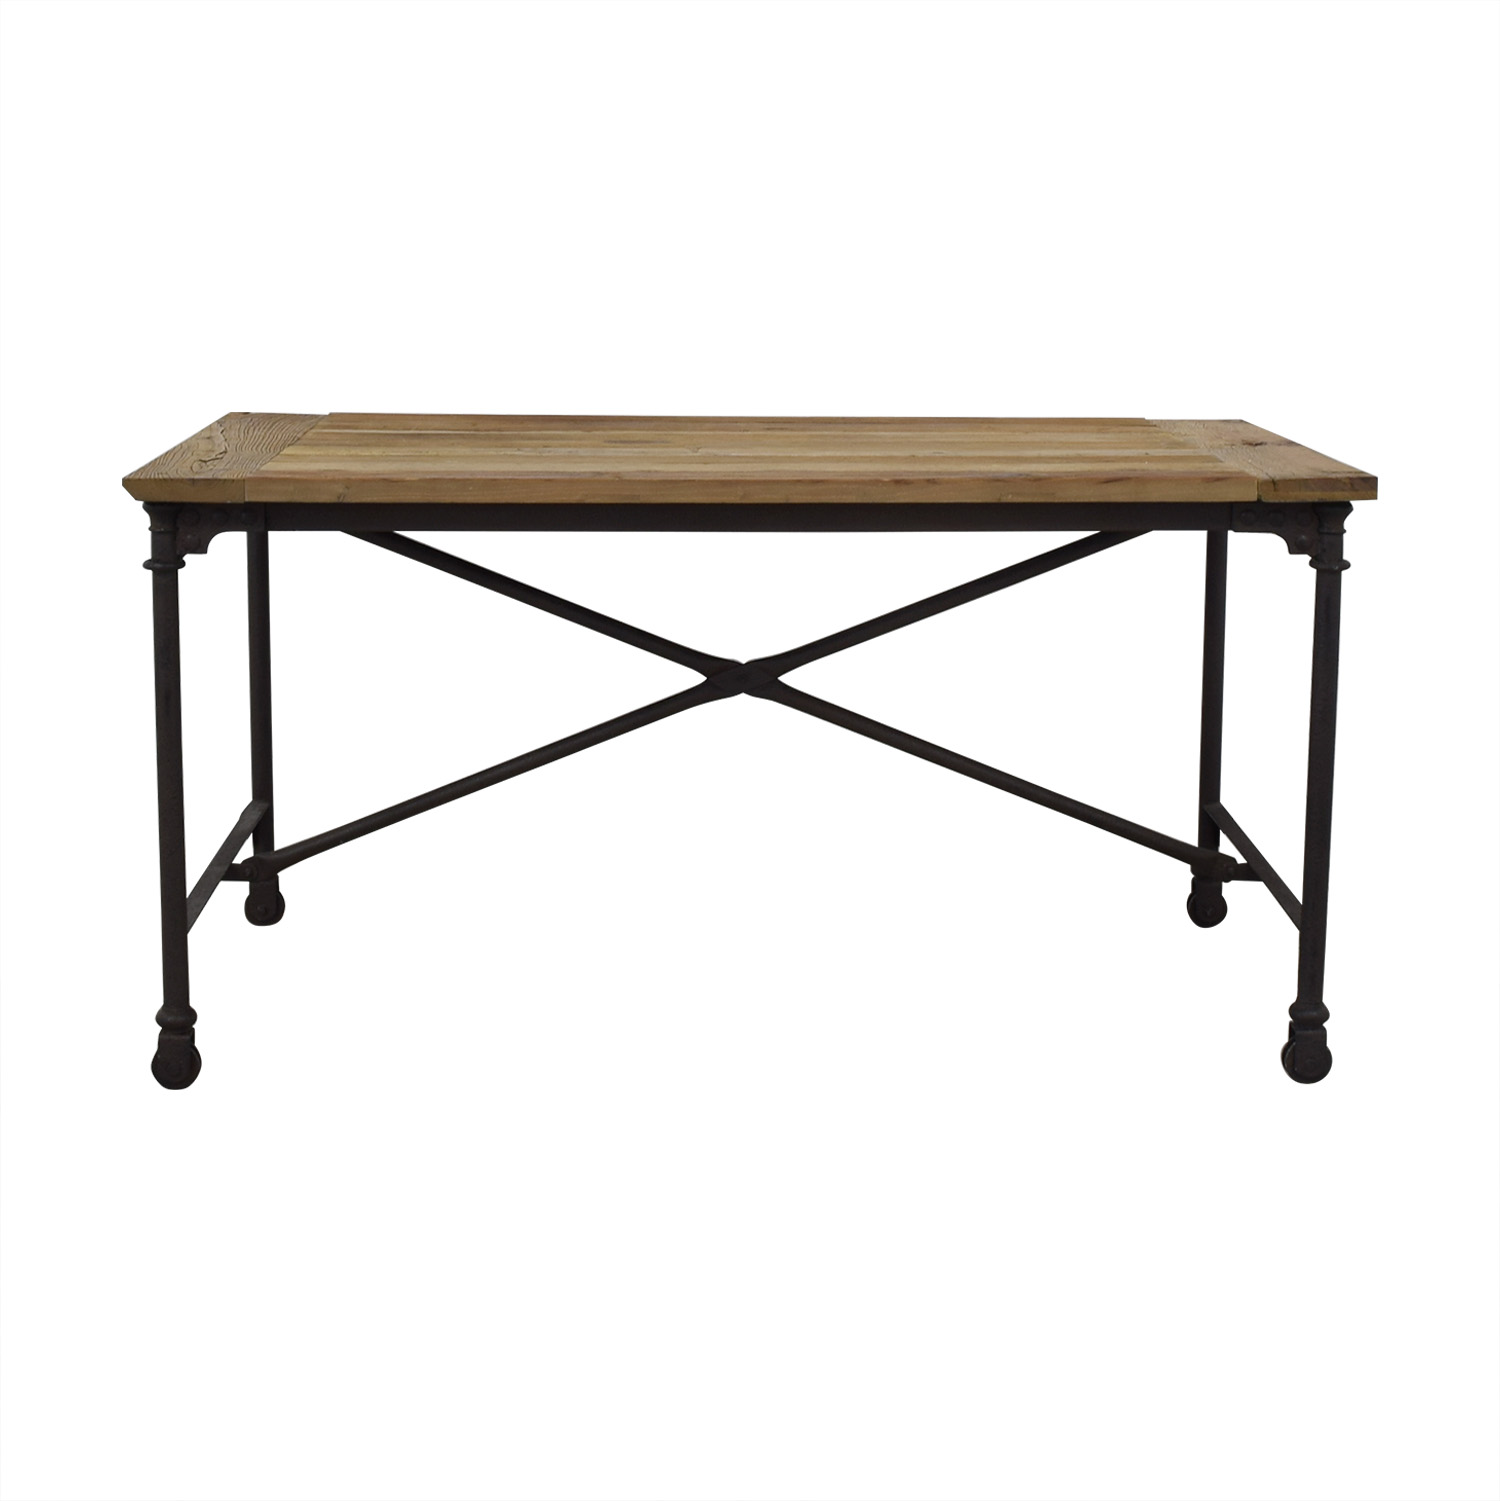 Restoration Hardware Flatiron Desk / Tables